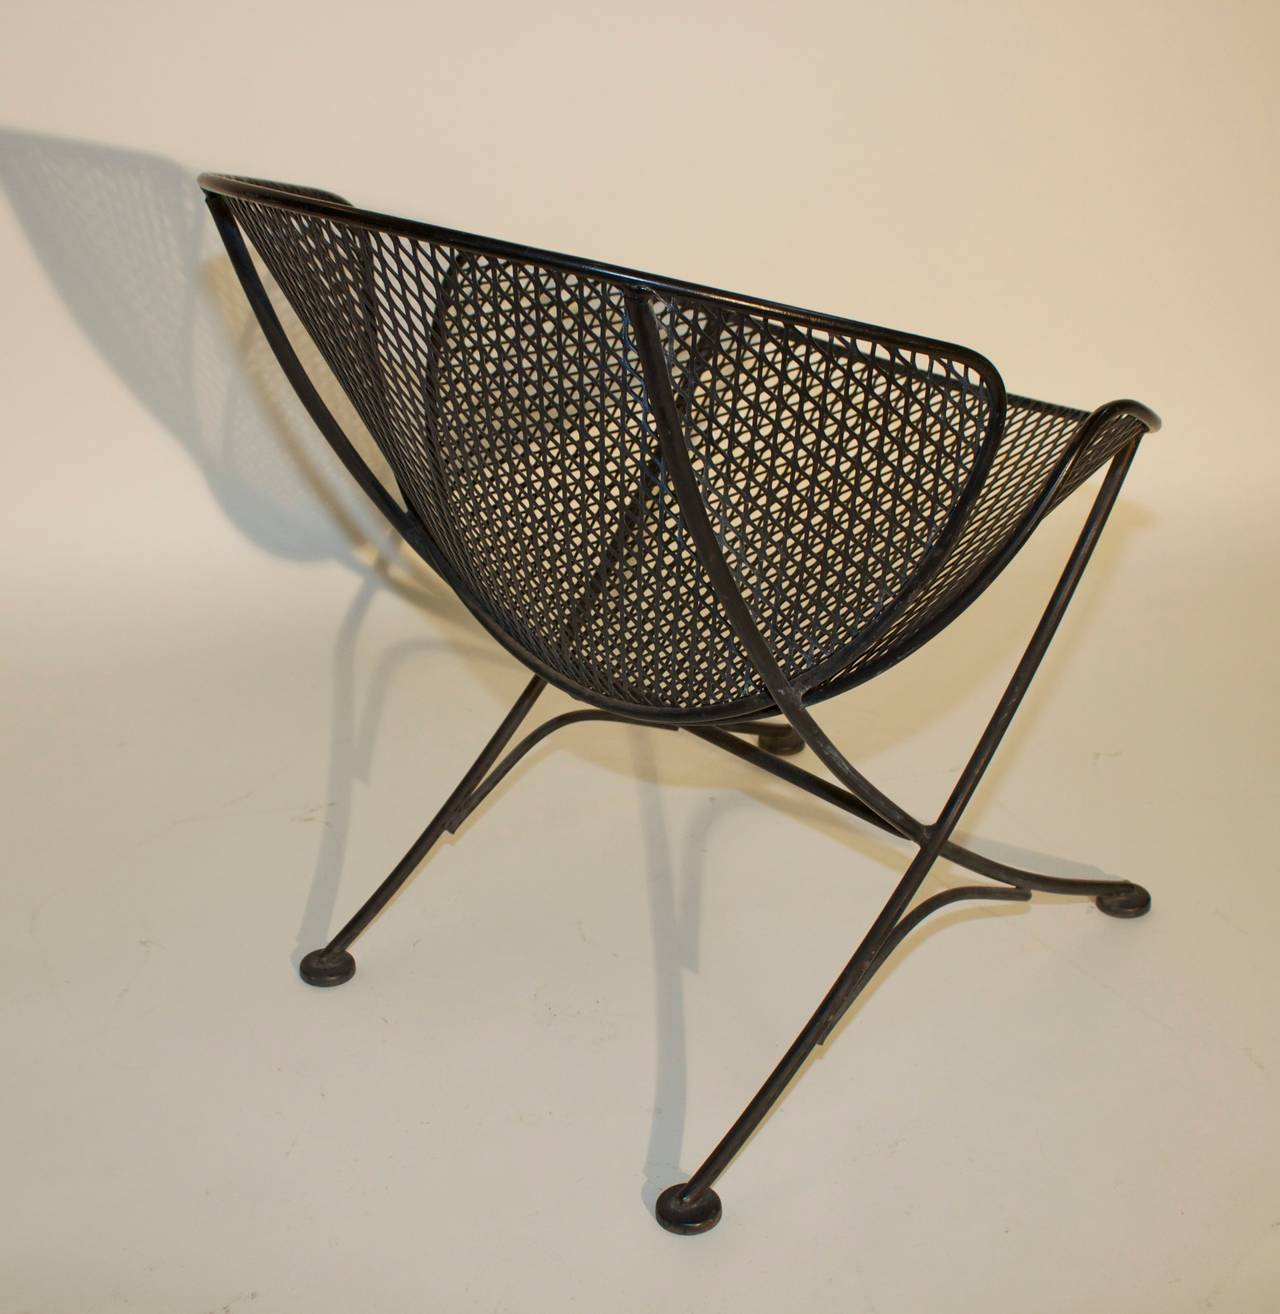 clam shell chair bed ikea quotclam quot or quotslice lounge by maurizio